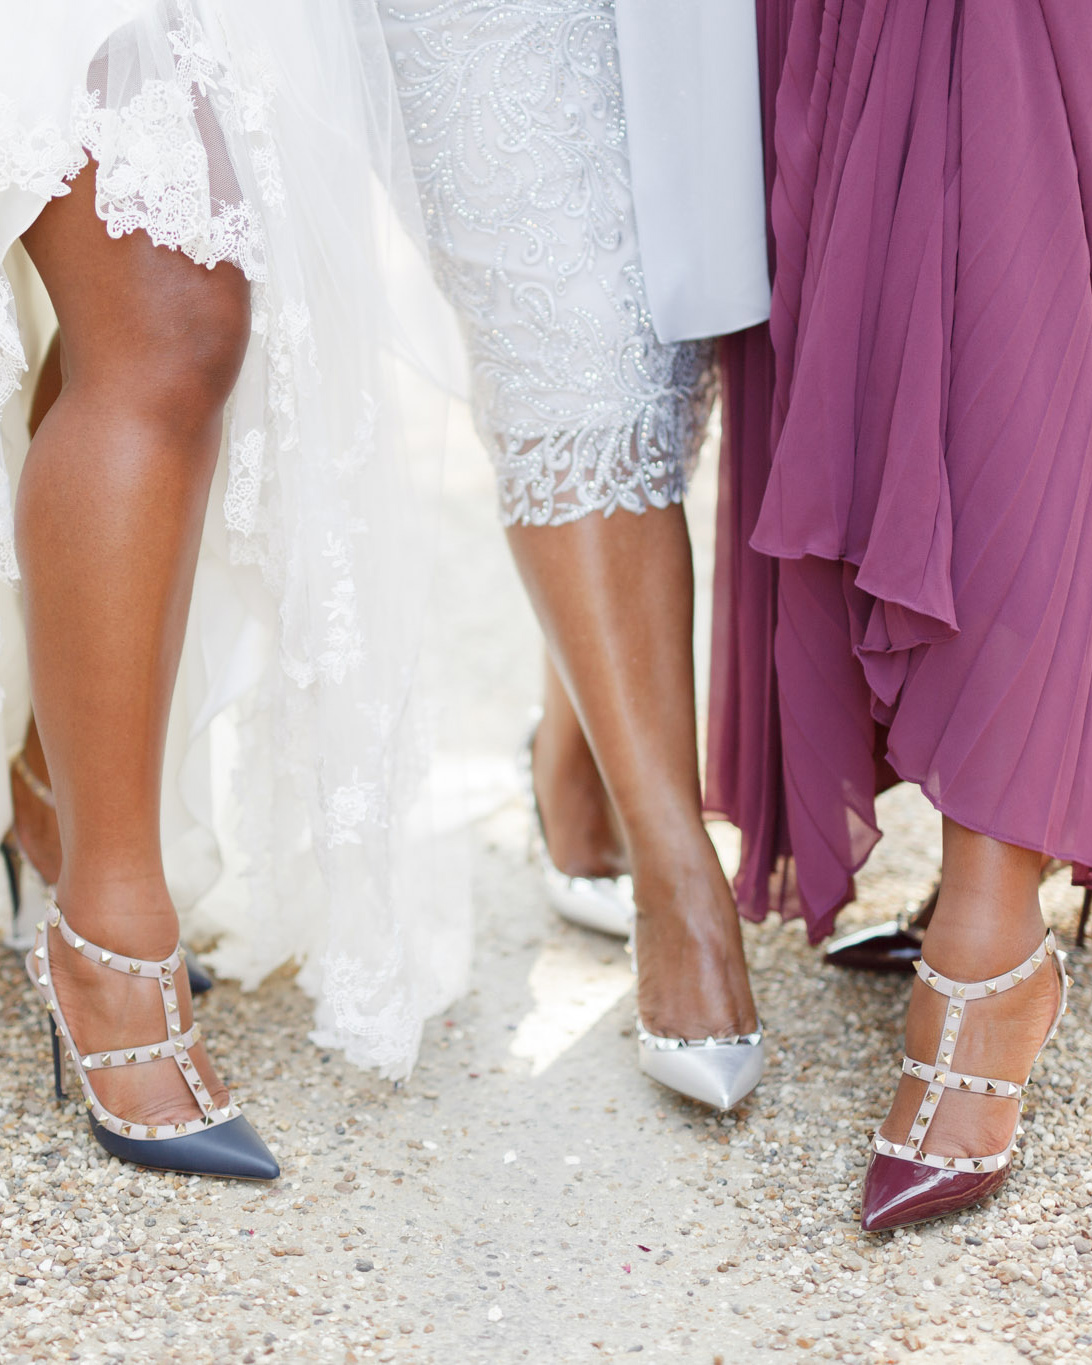 ryan thomas wedding bride and bridesmaids shoes